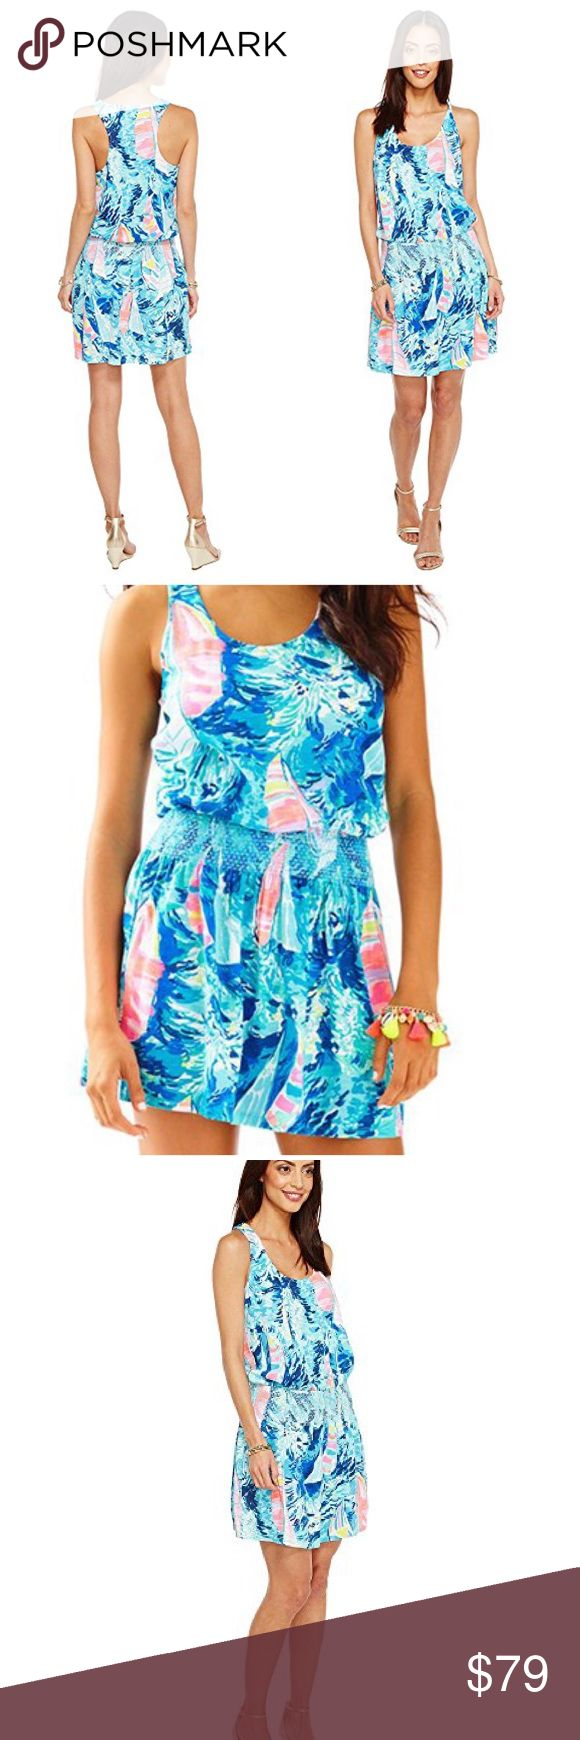 "🆕 Lilly Pulitzer Tideline Dress Hey Bay Bay Printed cotton-modal slub knit. Easy fit. Scoop neckline. Sleeveless design. Blouson bodice. Smocked detail at waist. Straight hem. Slip-on. Unlined. 60% cotton, 40% modal. Machine wash cold, tumble dry. Imported. Underarm across 24"". Length 37"". Brand new with tag. Retail price $118. Smoke free and pet free. Lilly Pulitzer Dresses"